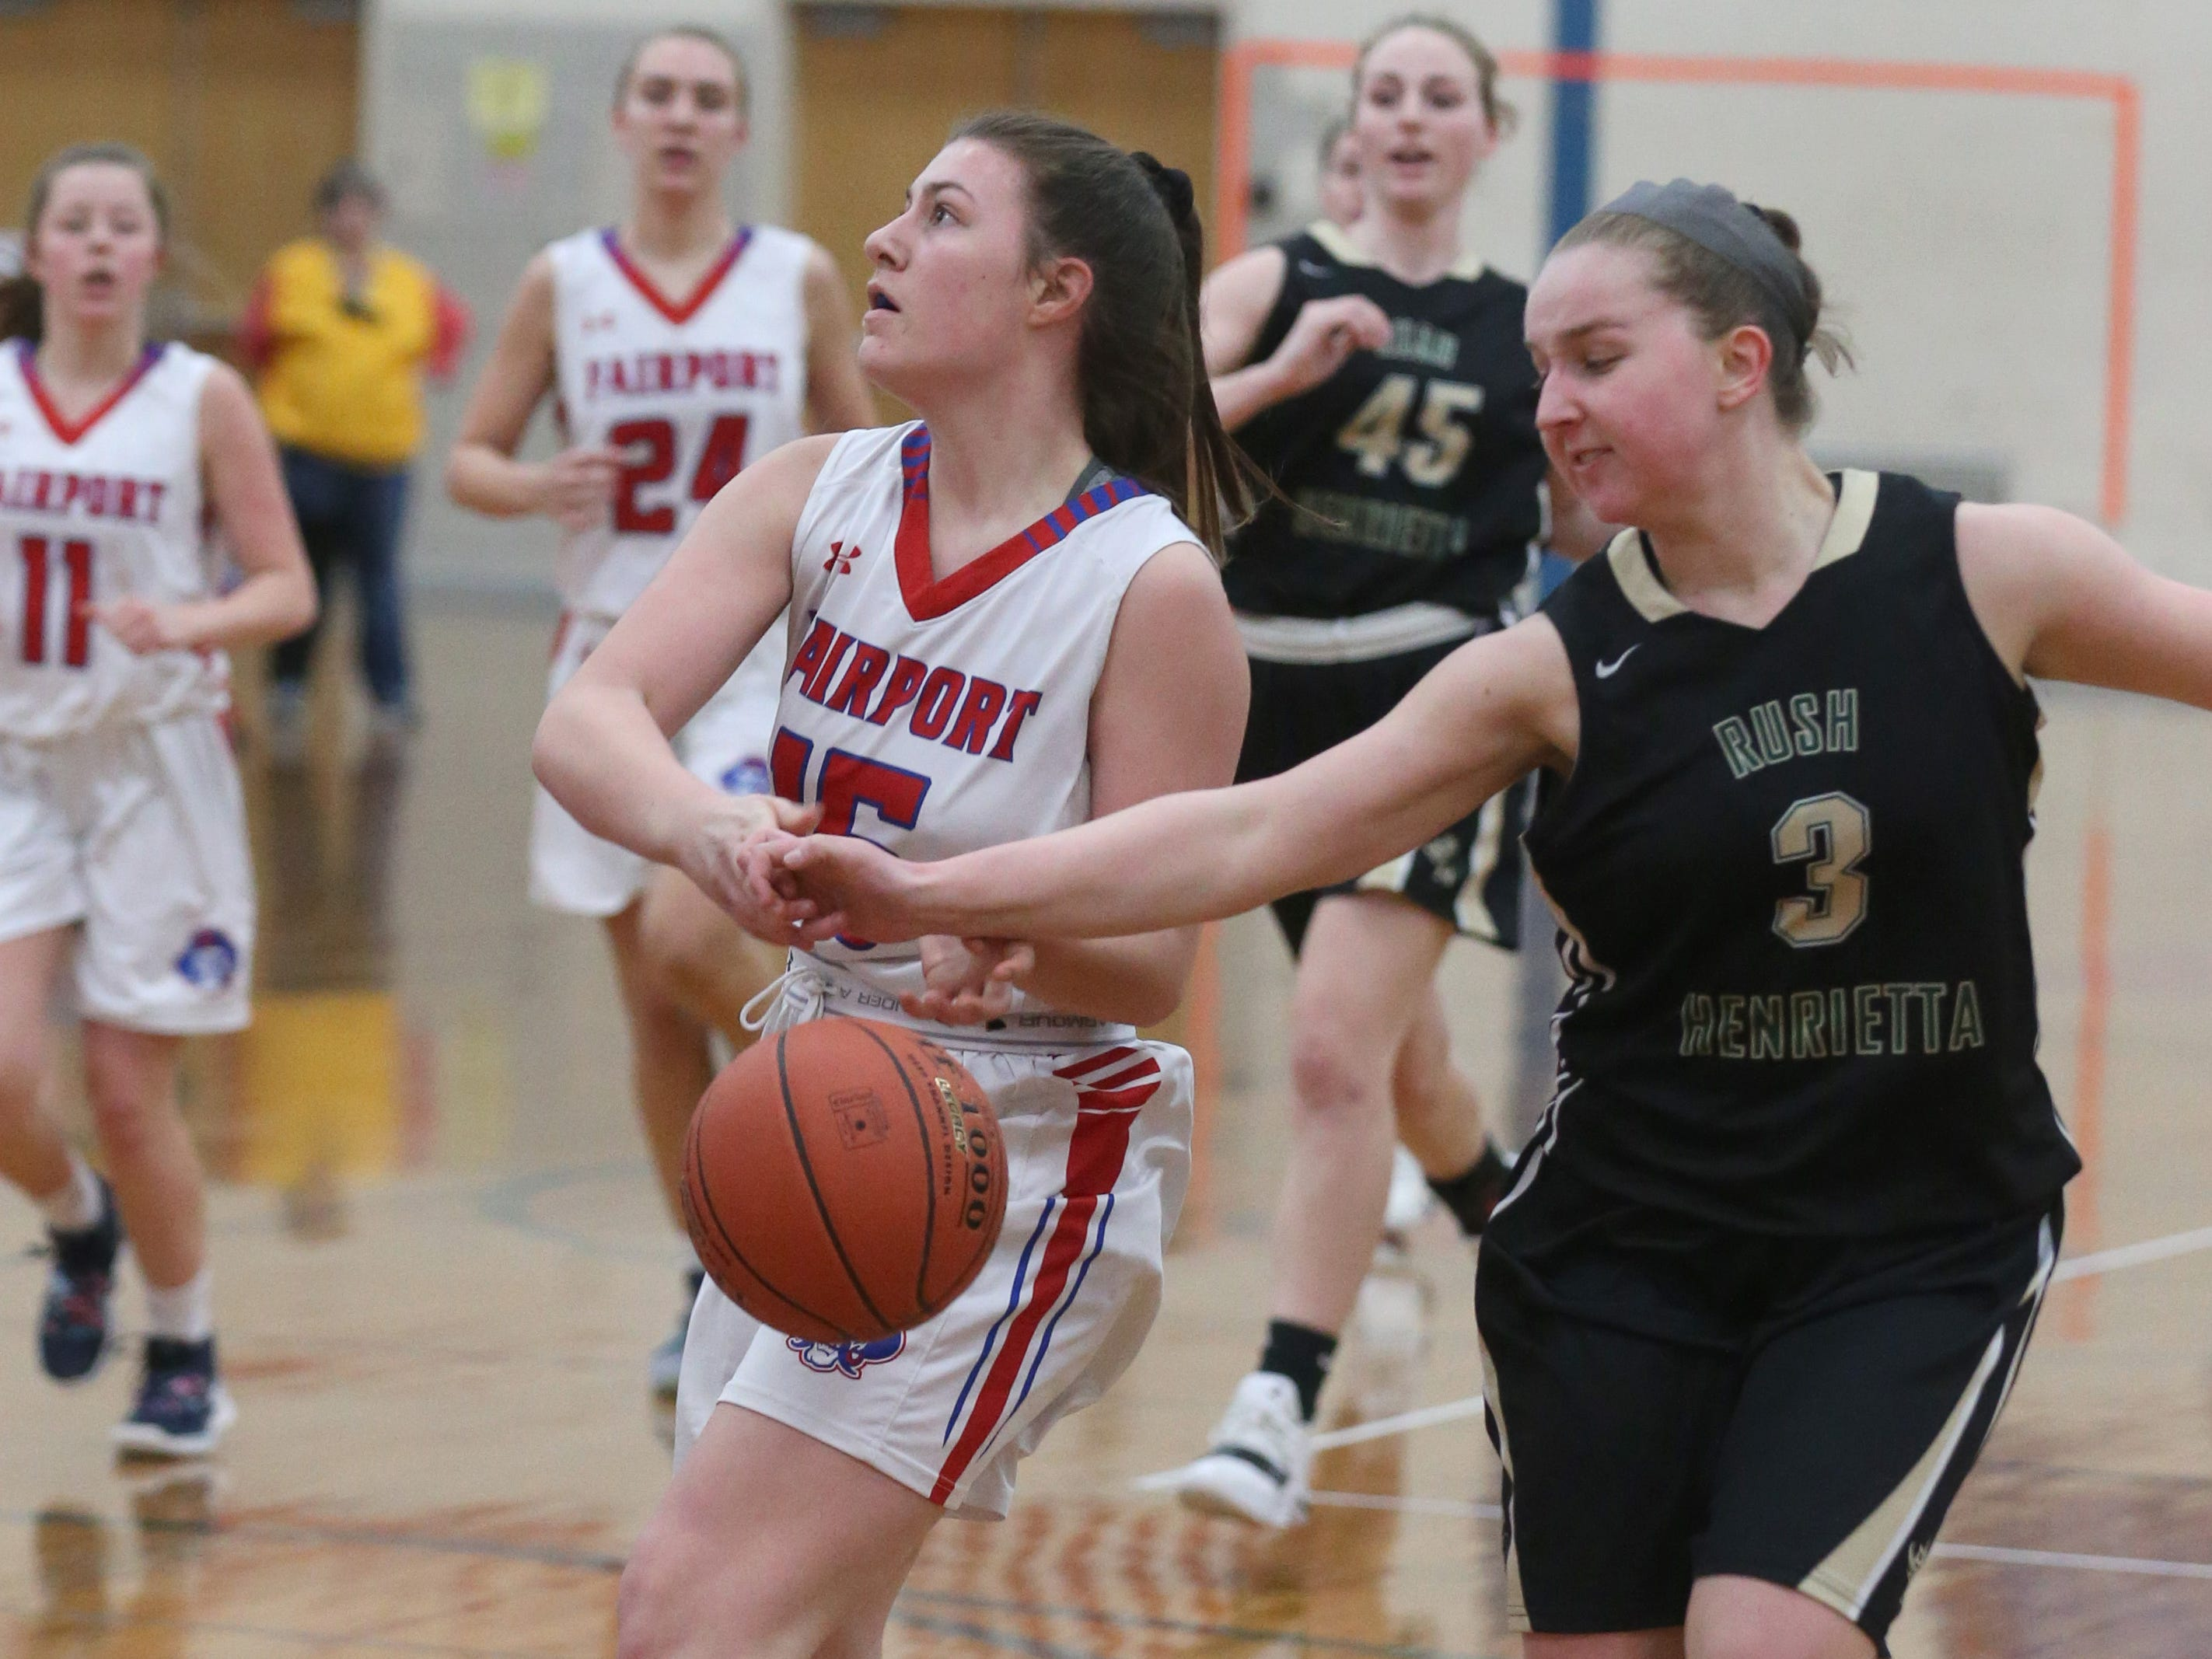 Rush-Henrietta's Logan Taylor, right, races back on defense to strip the ball away from Fairport's Kat Zimmerman before she can complete her layup.